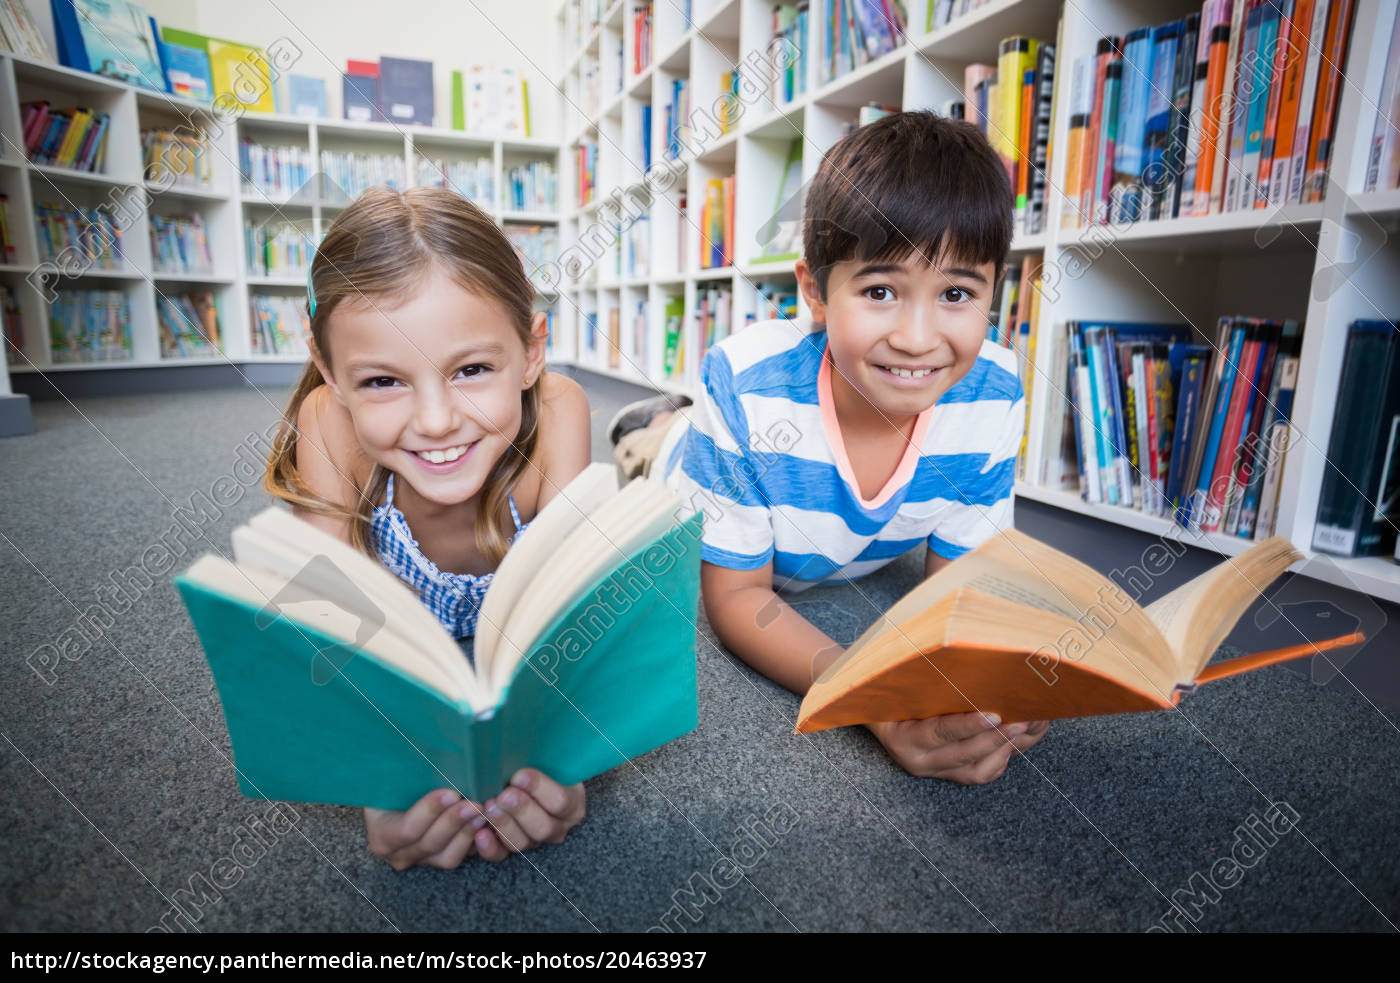 Stock Photo 20463937 - Happy school kids lying on floor and reading a book  in library